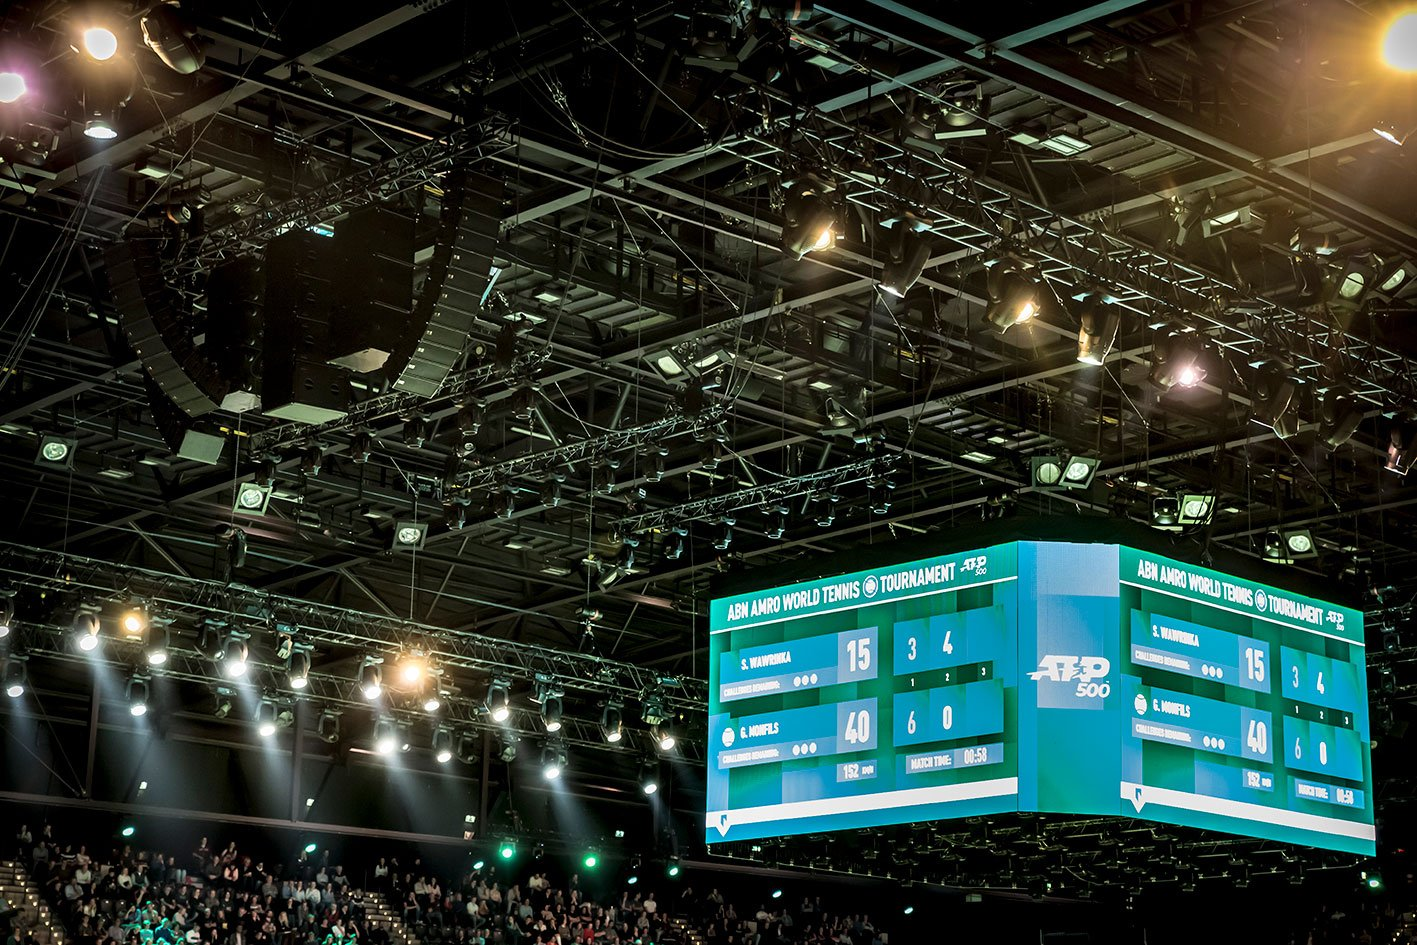 abn-amro-tennis-ampco-flashight-rental-lights-audio-huren2